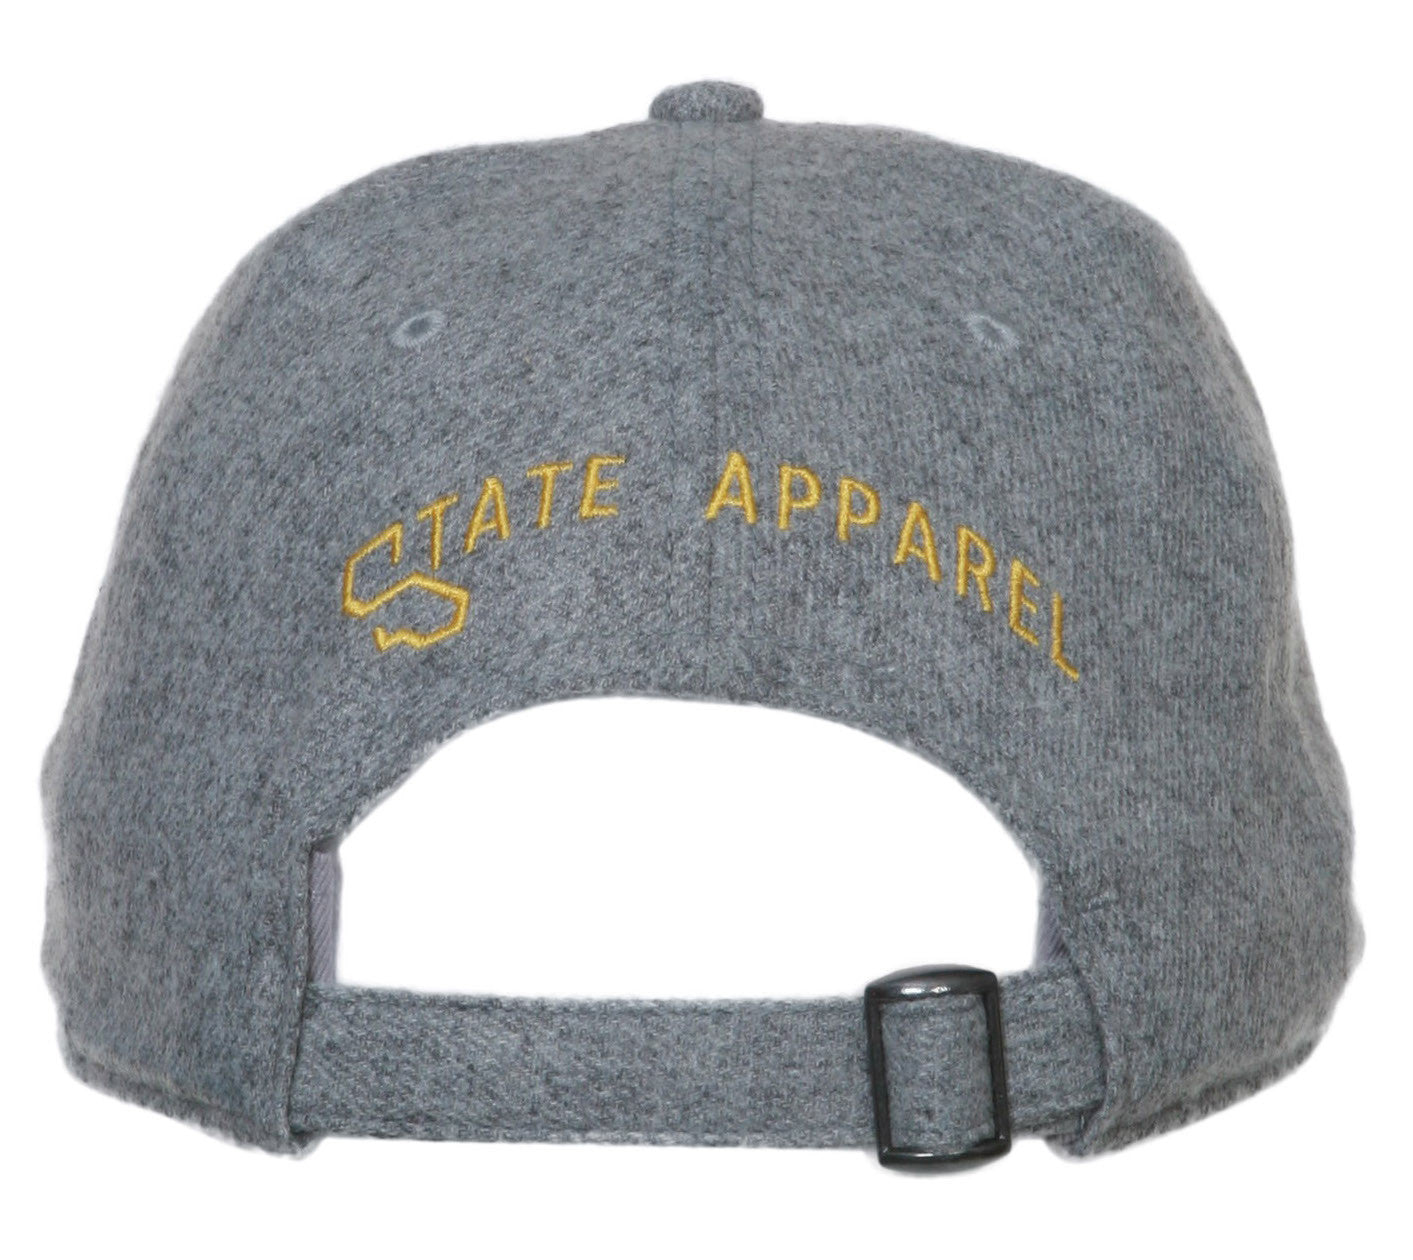 HIGHWAY 1 HAT - GRAY WOOL